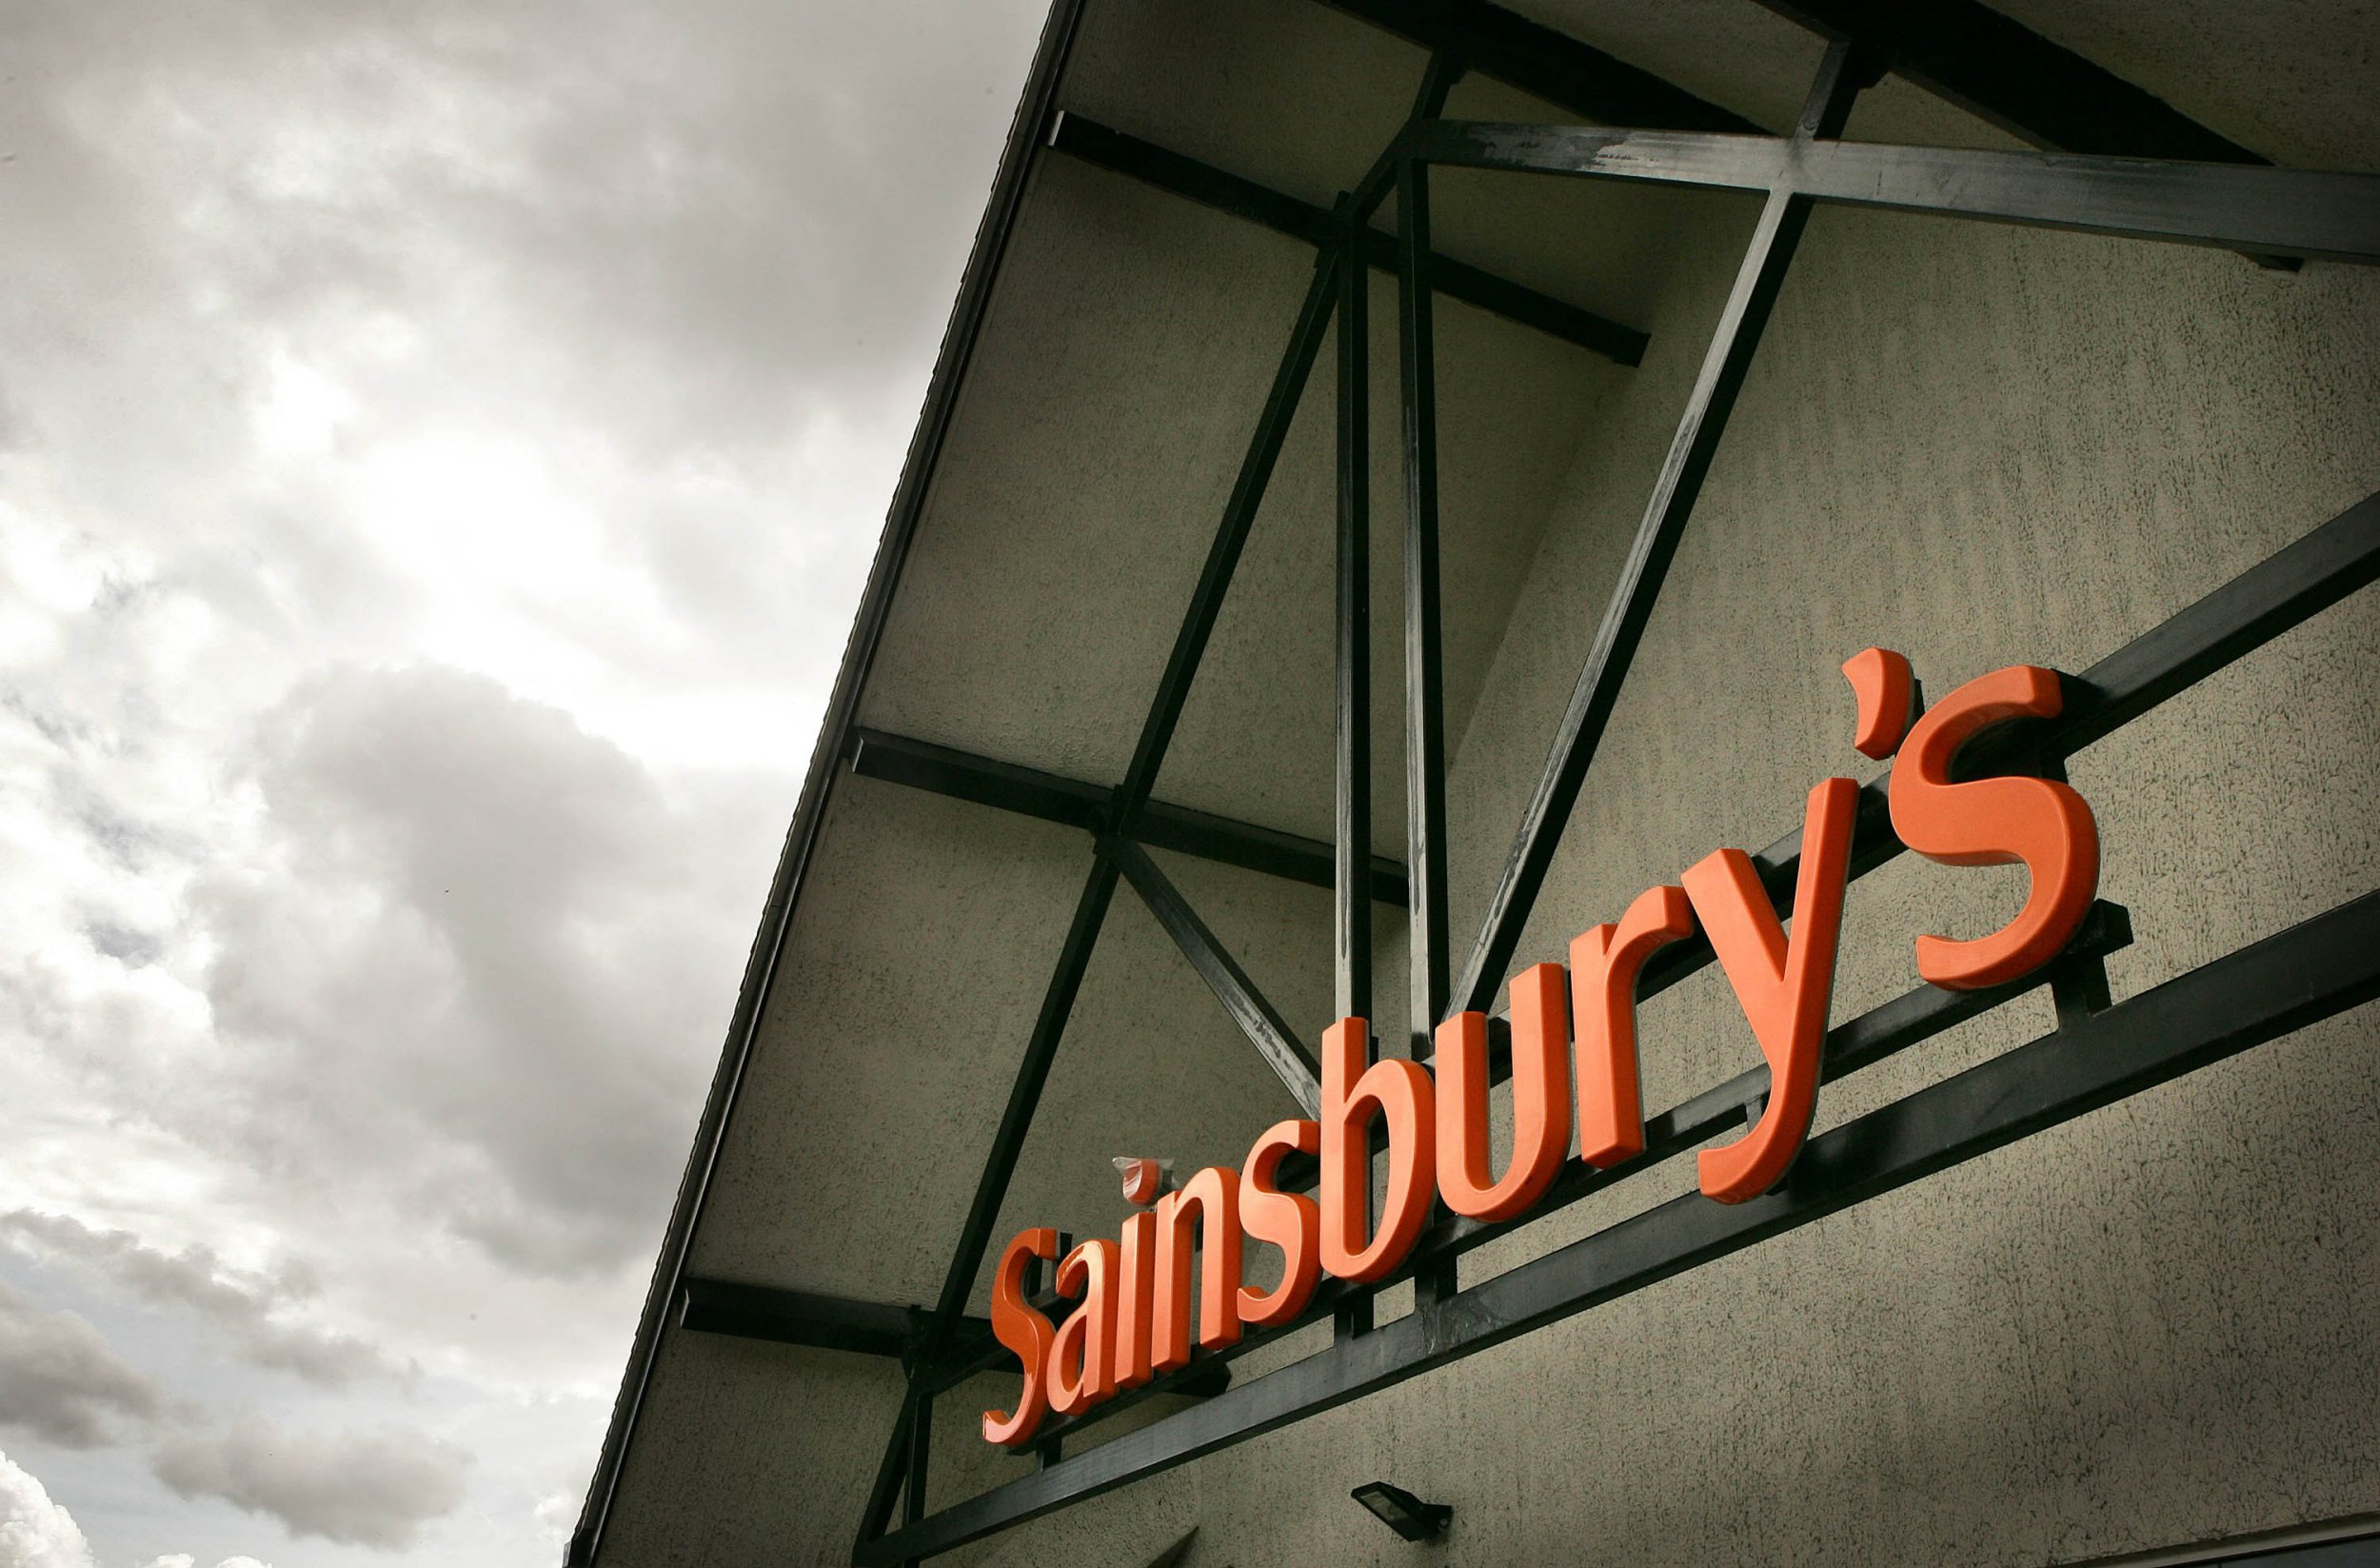 Sainsbury's opening times on New Year's Eve and New Year's Day 2018